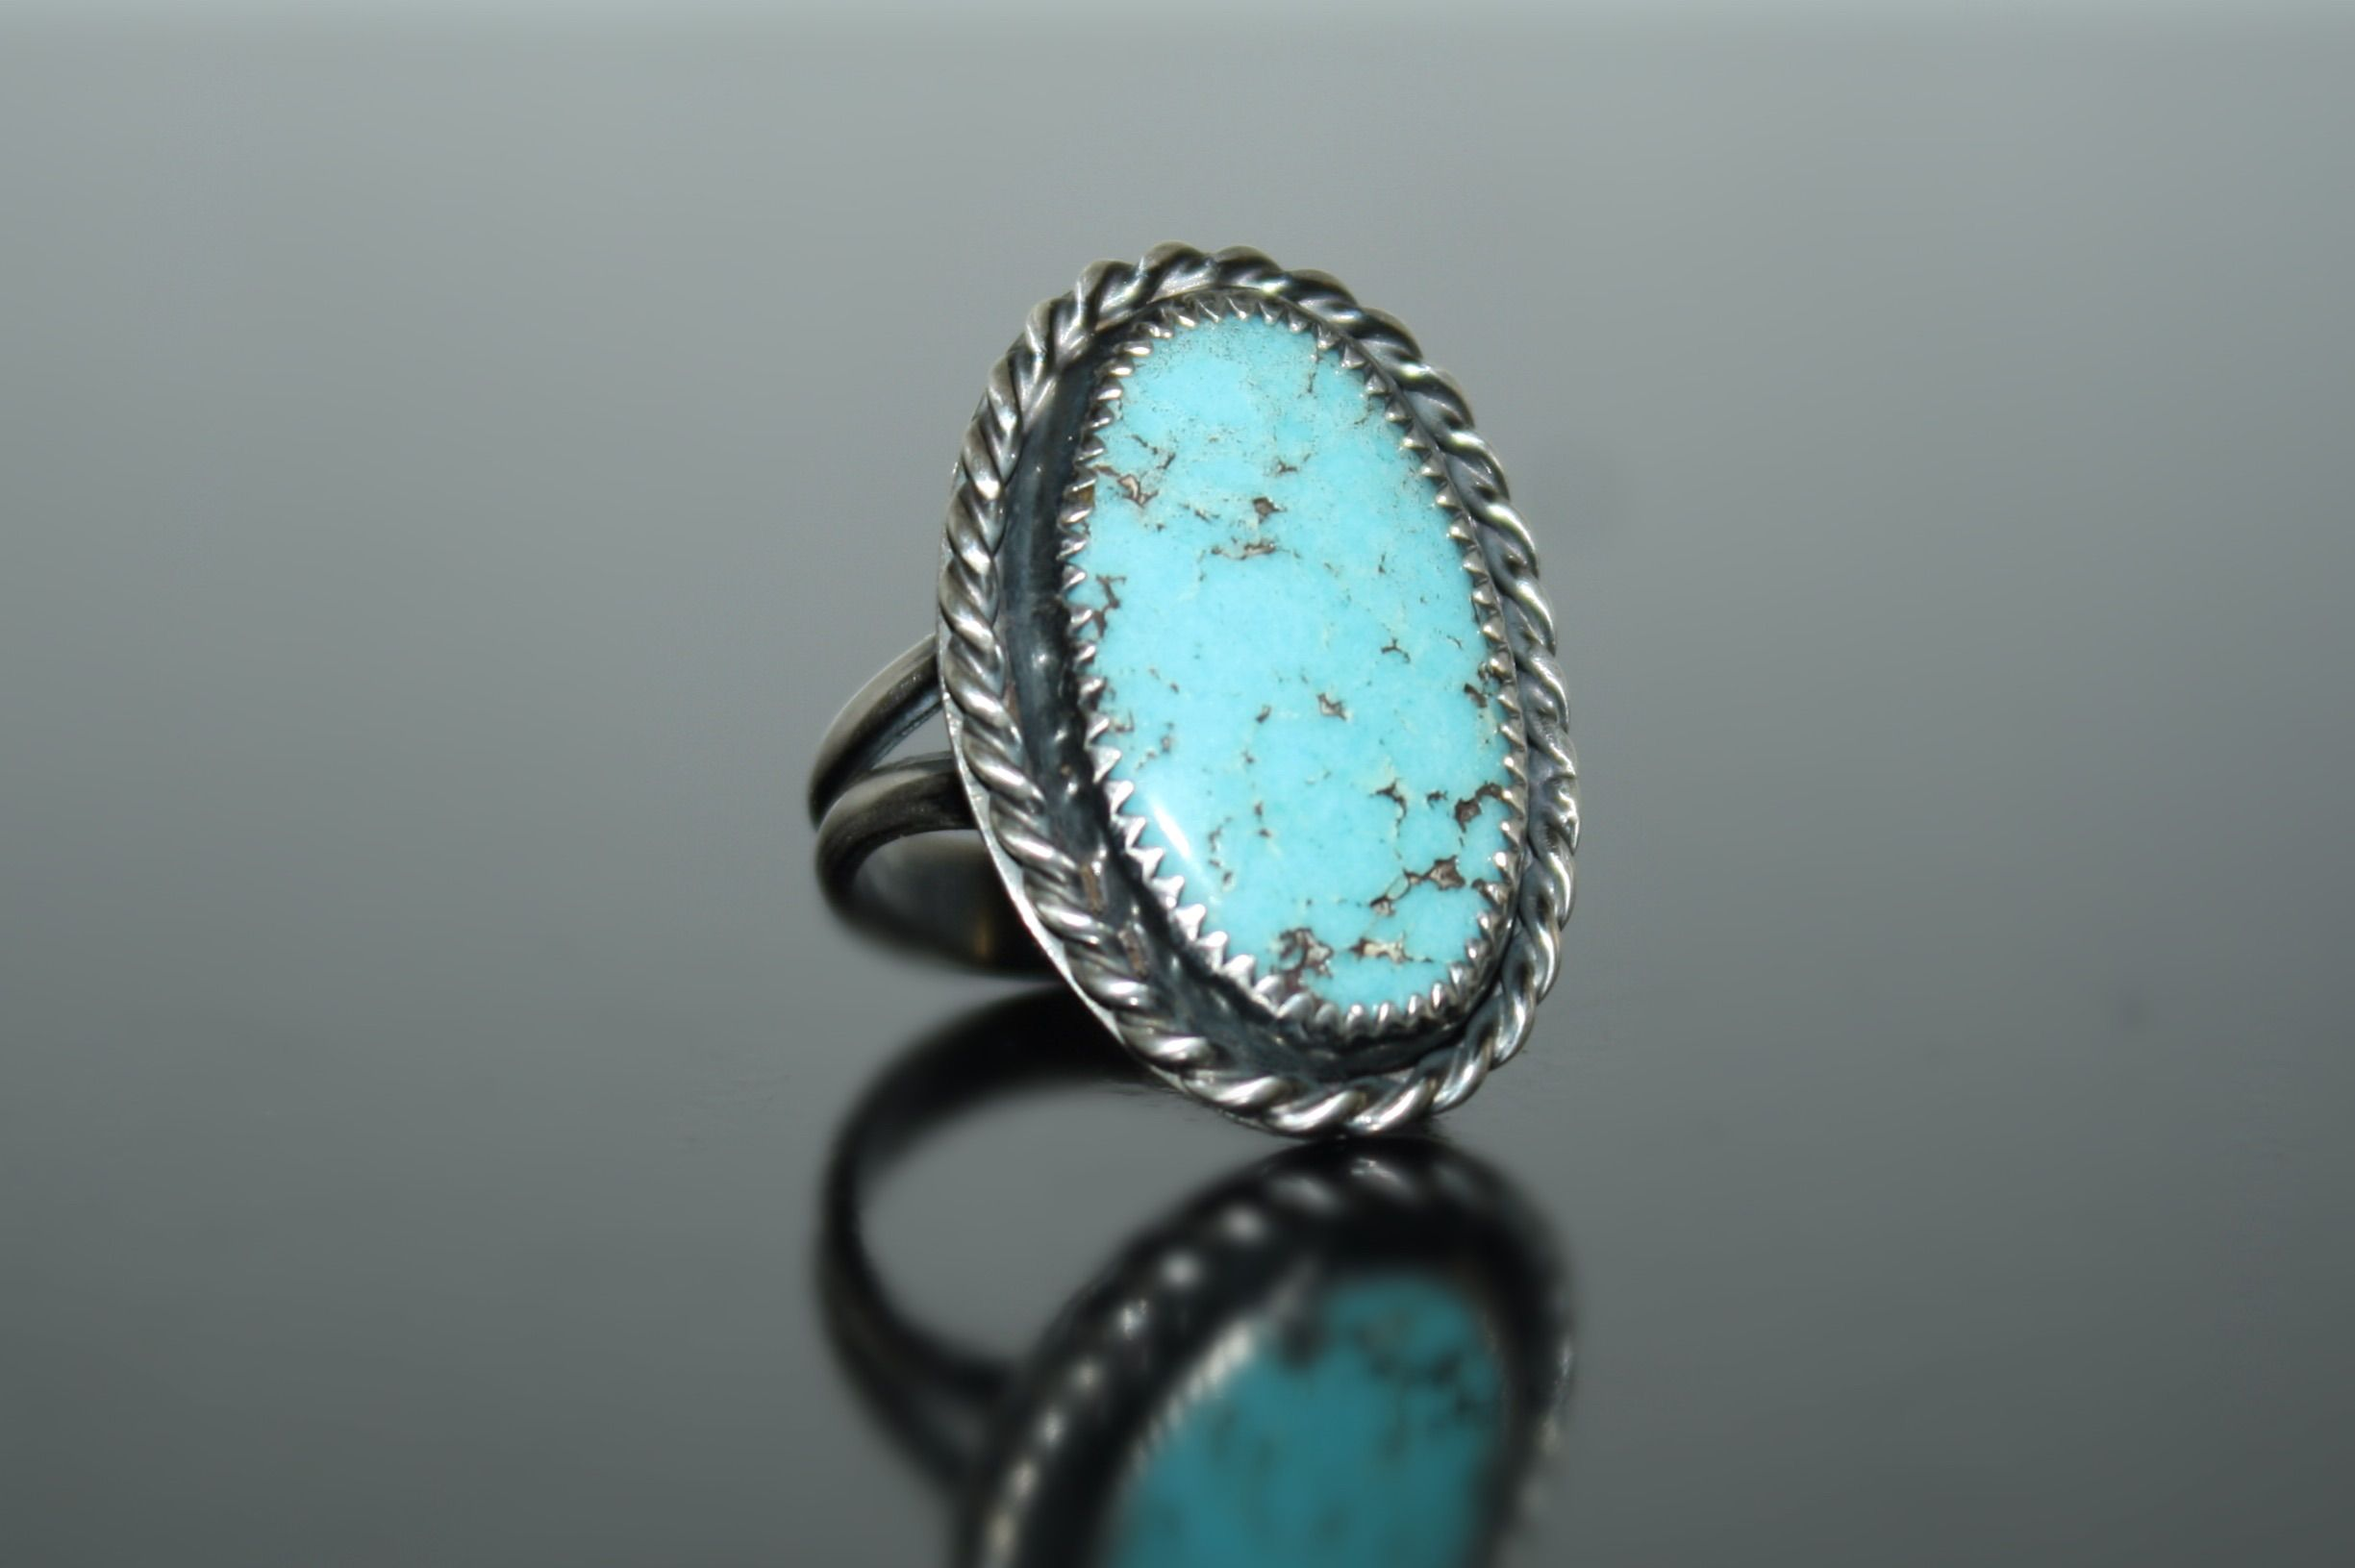 Size 5.75 Turquoise sterling silver ring from Shirin Designs ...